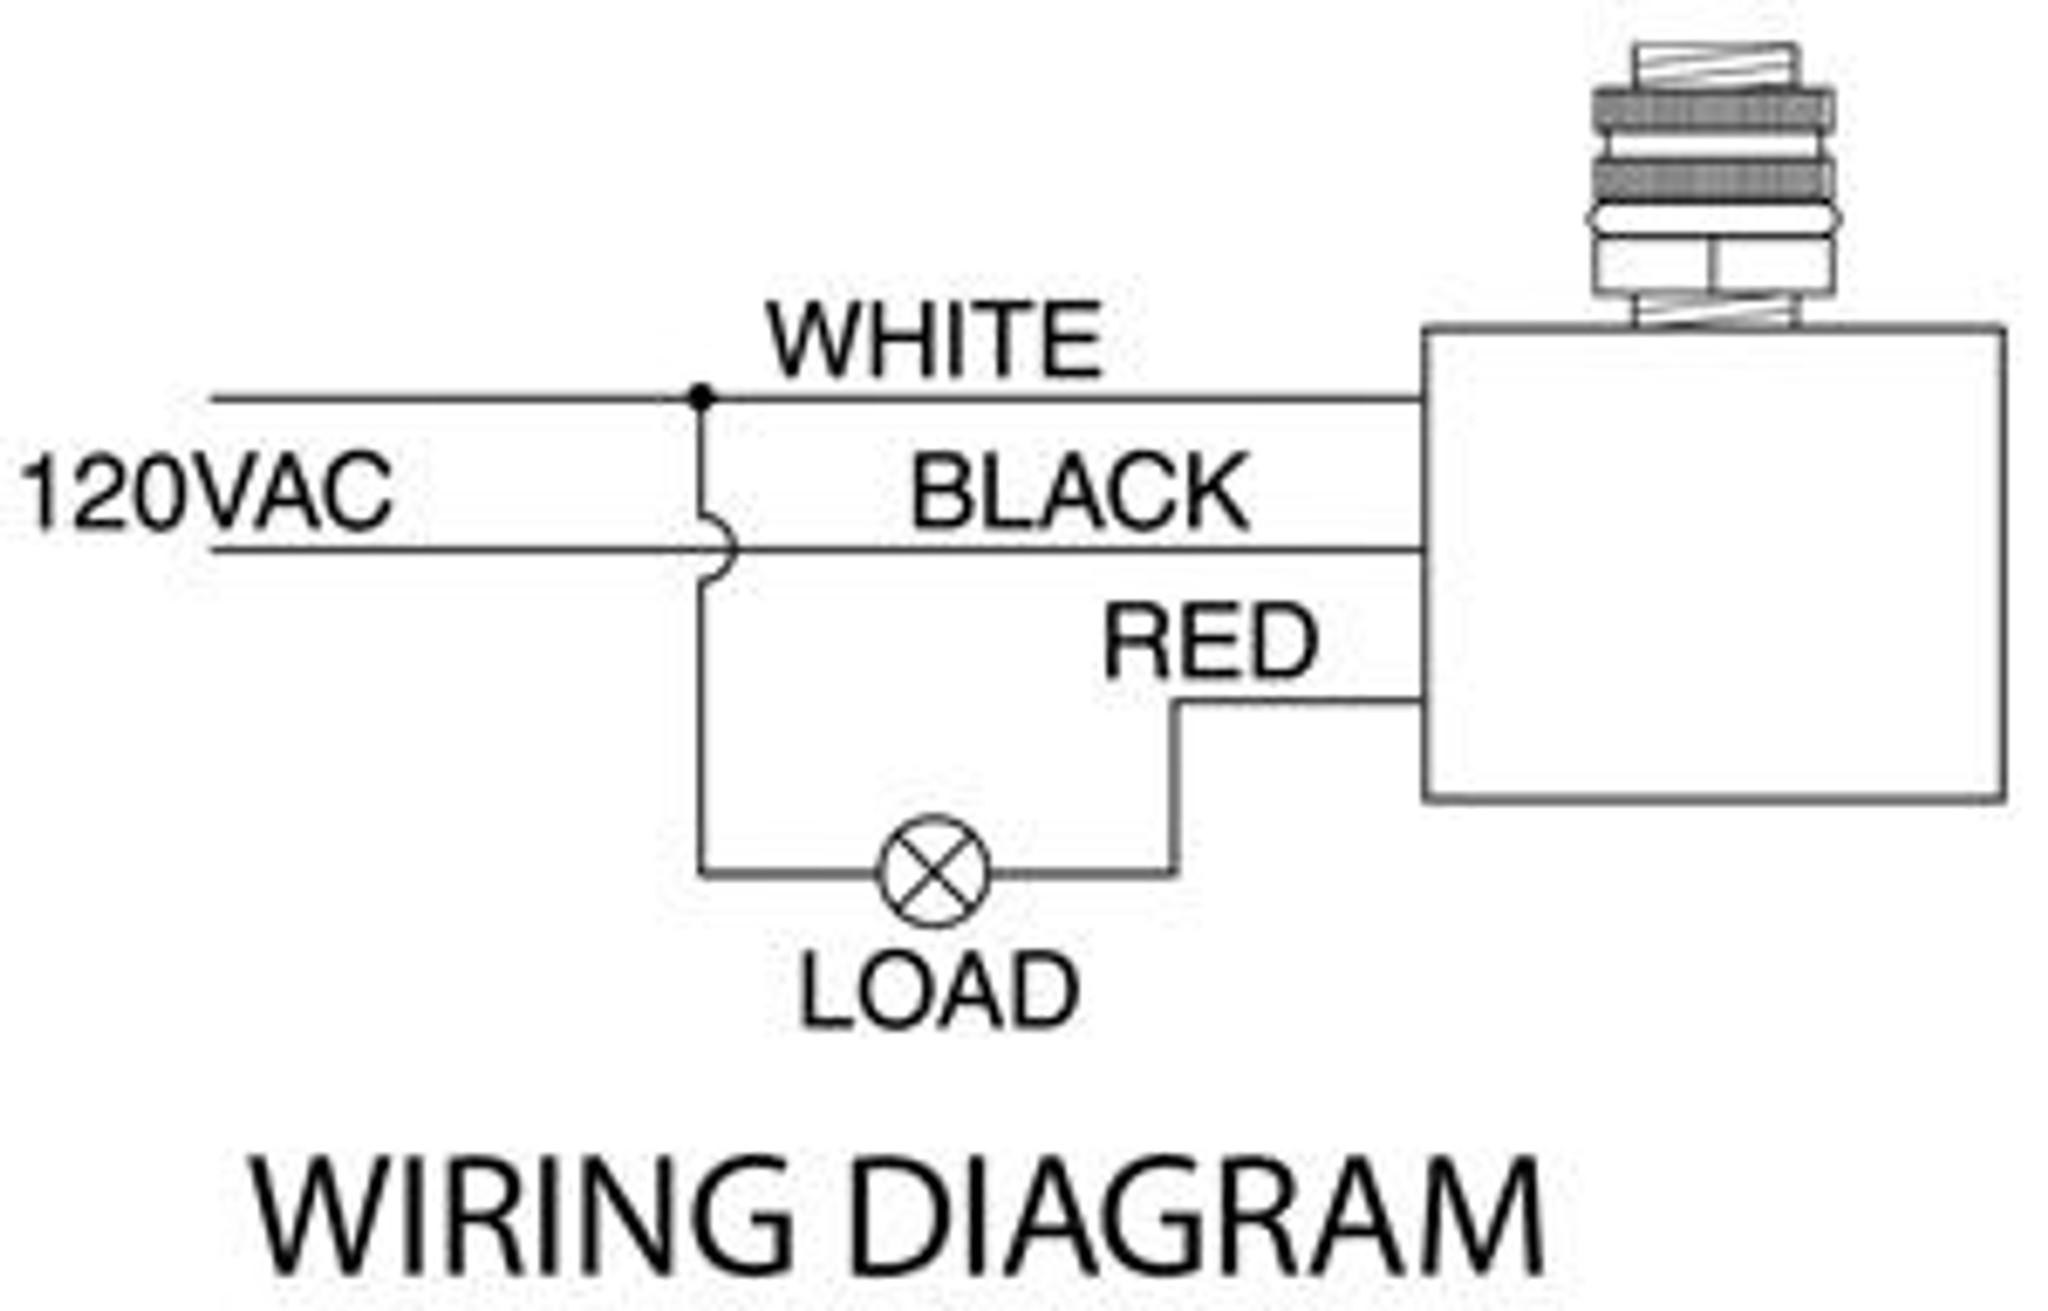 Photocell Wiring Diagram Photocell Timer Wiring Diagram Photocell